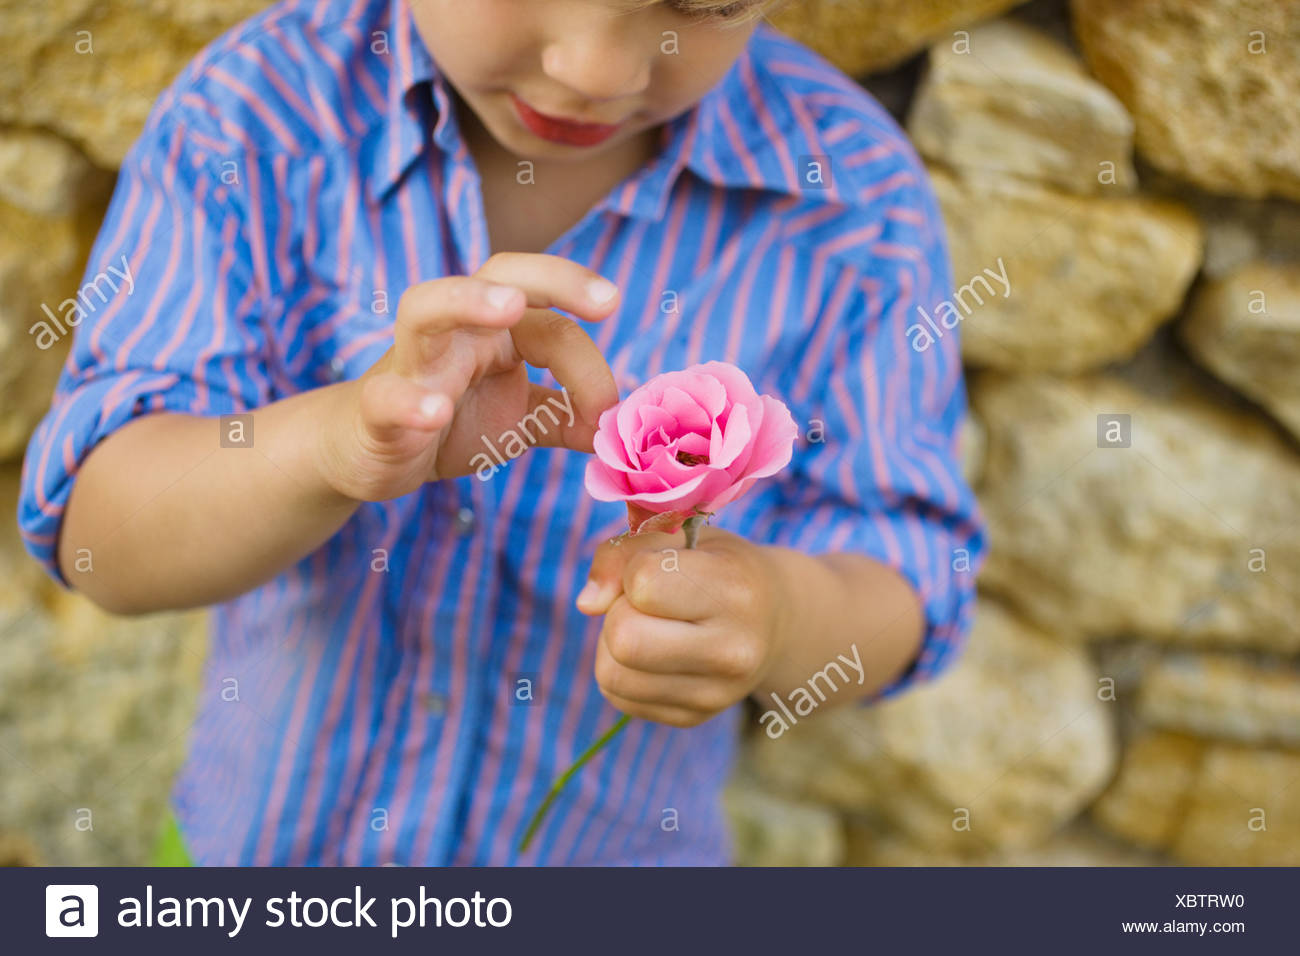 A boy picking petals off a flower - Stock Image